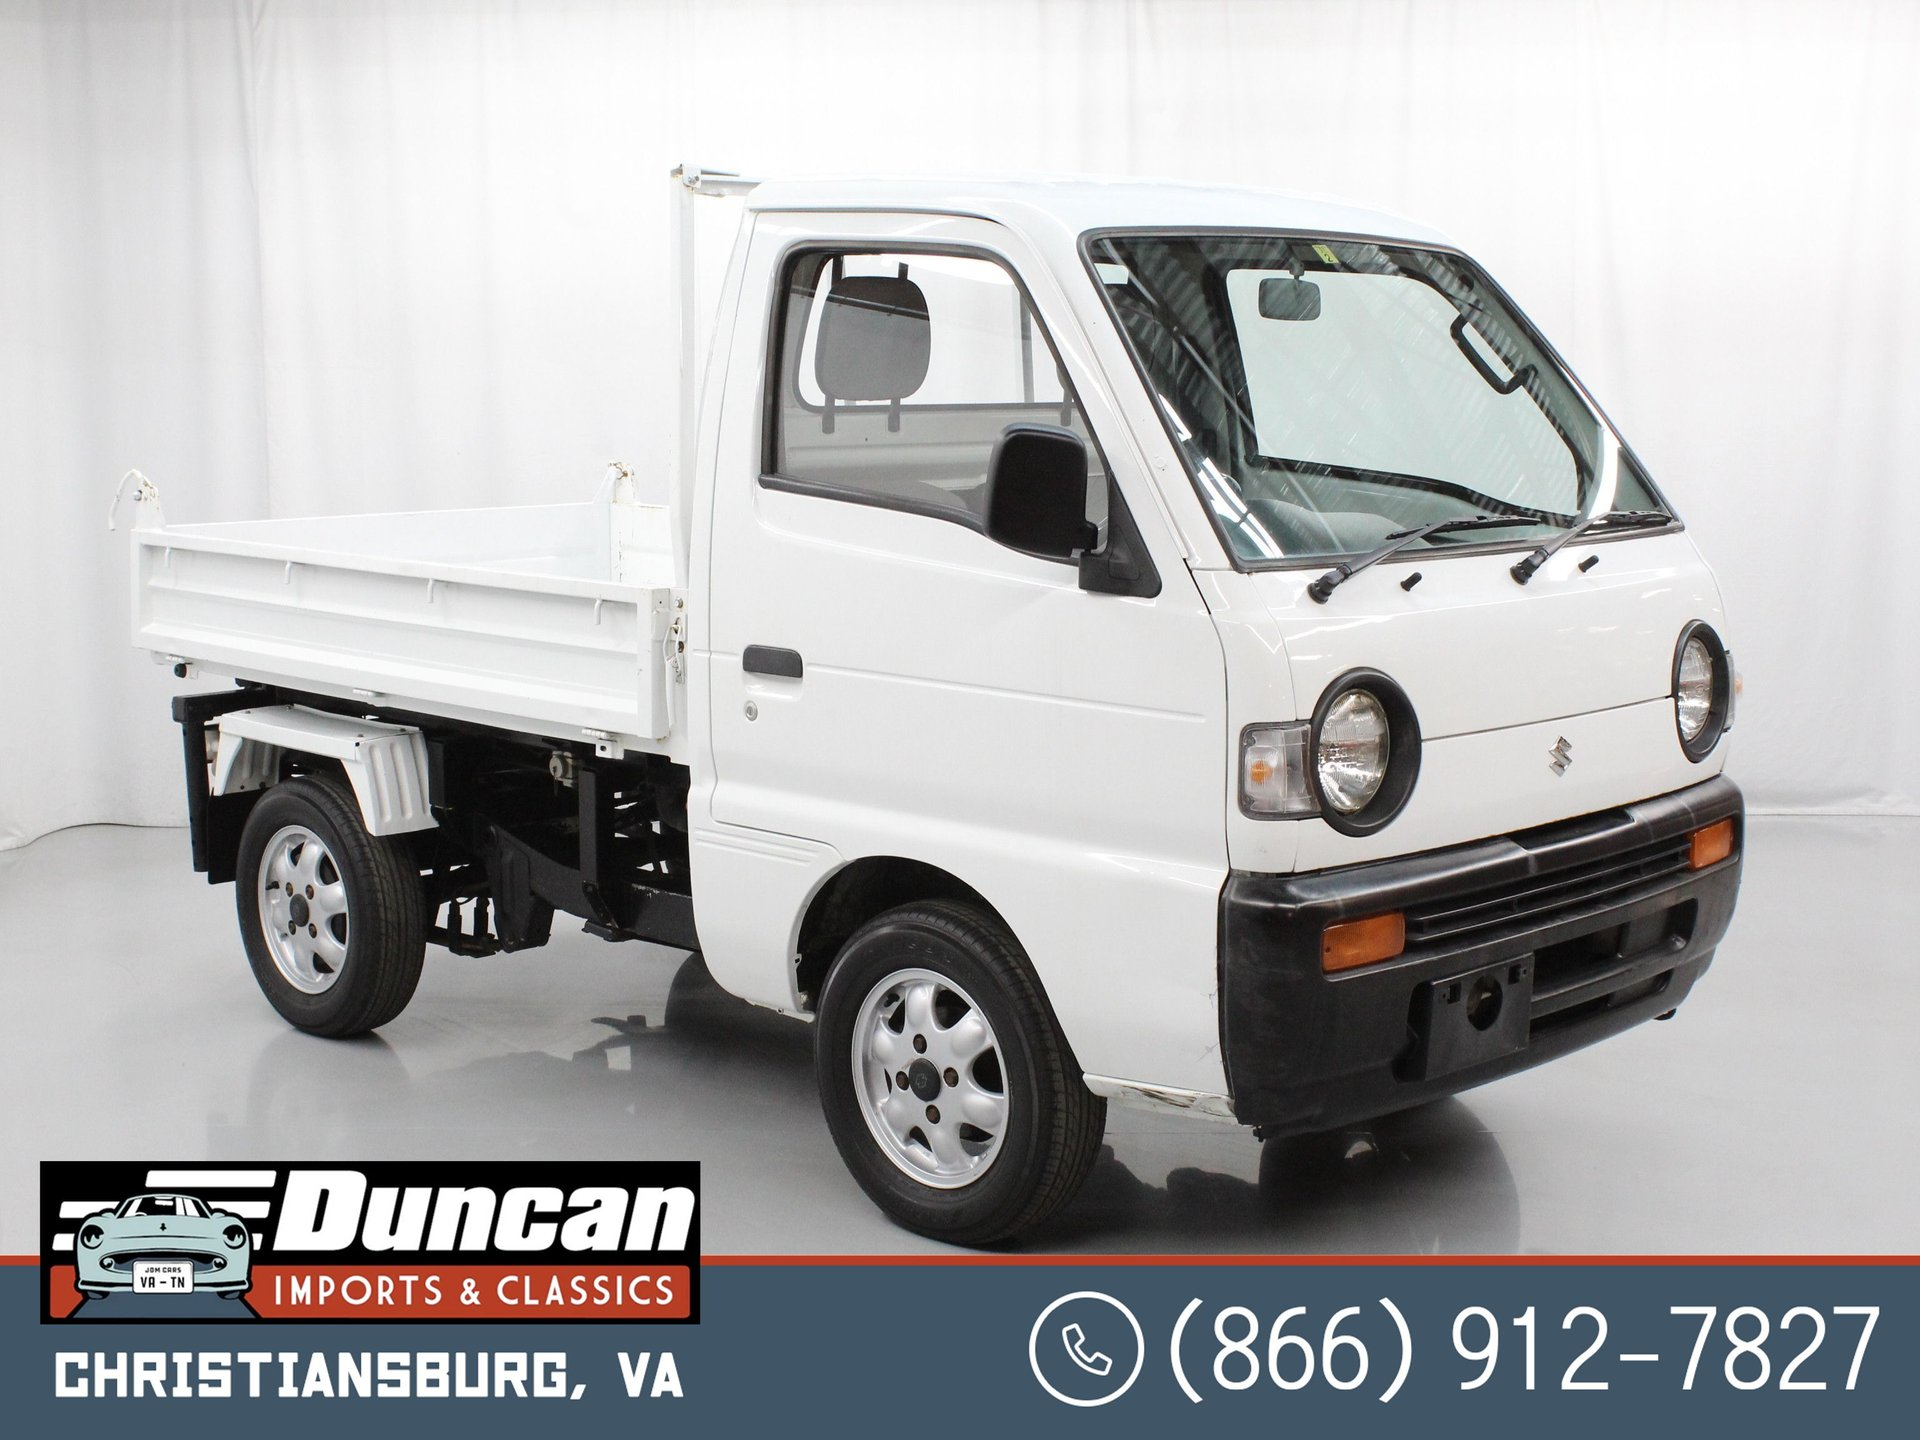 1993 suzuki carry dump bed